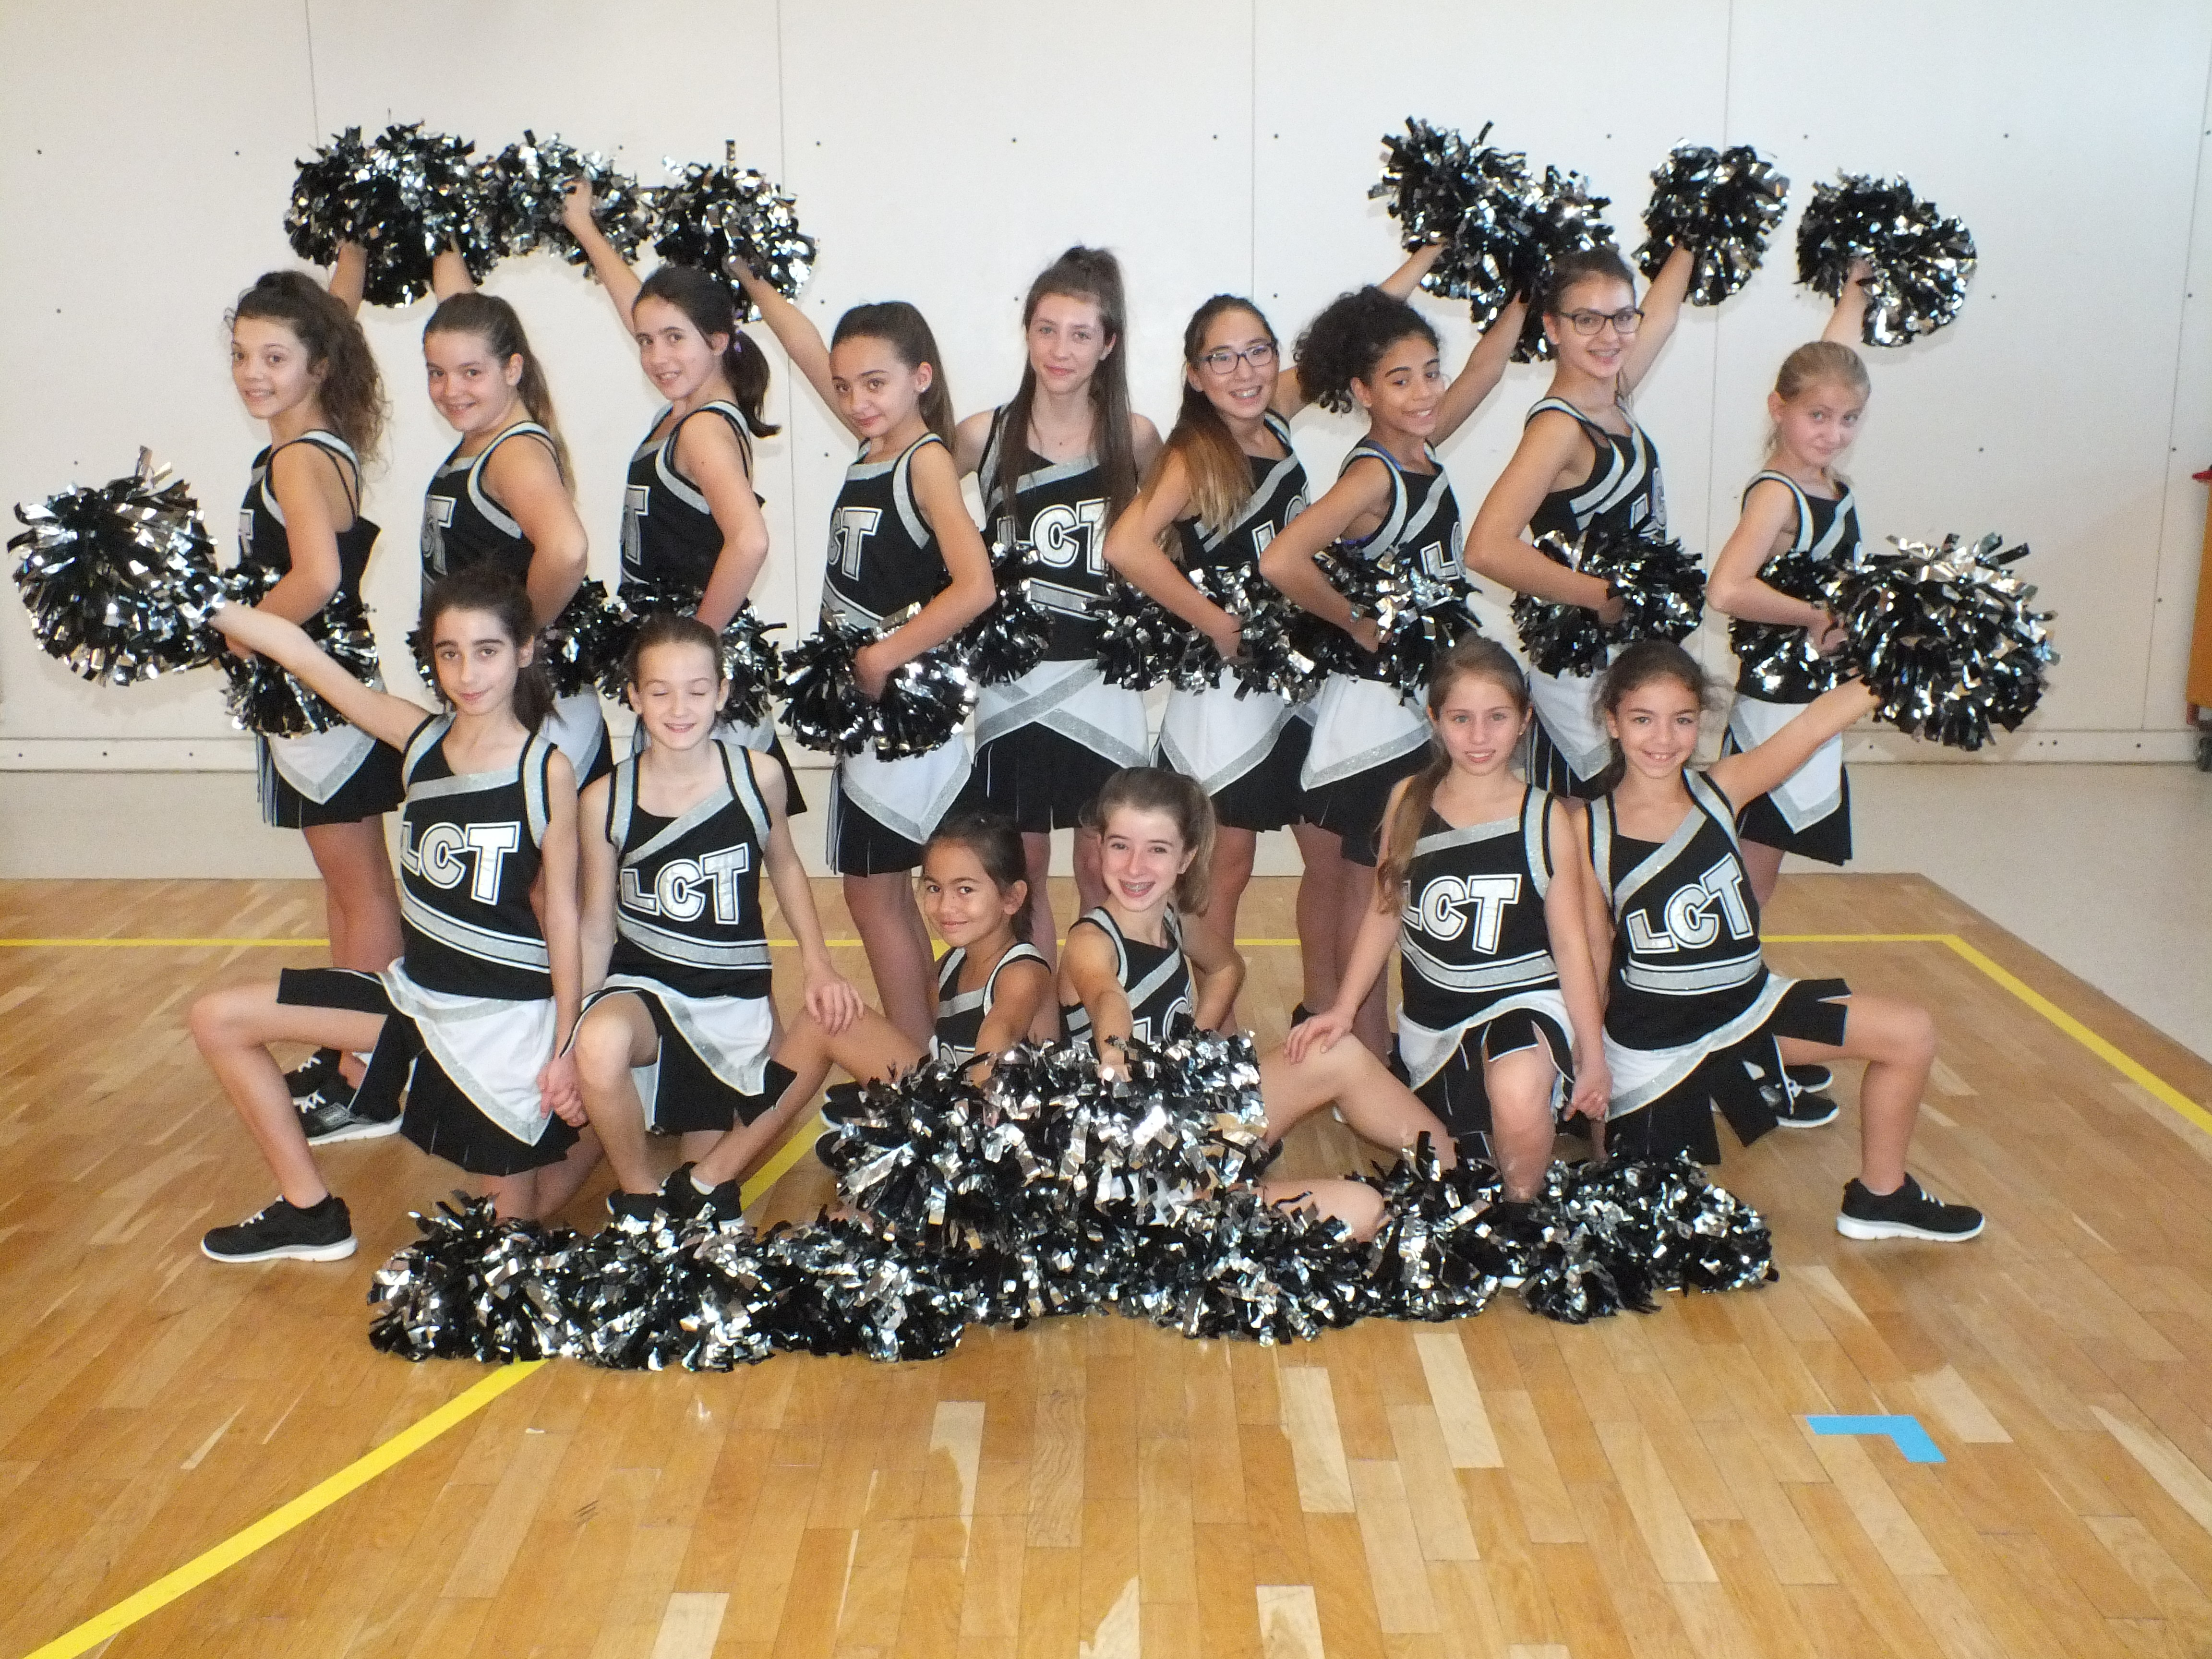 Tempete equipe LCT 2016